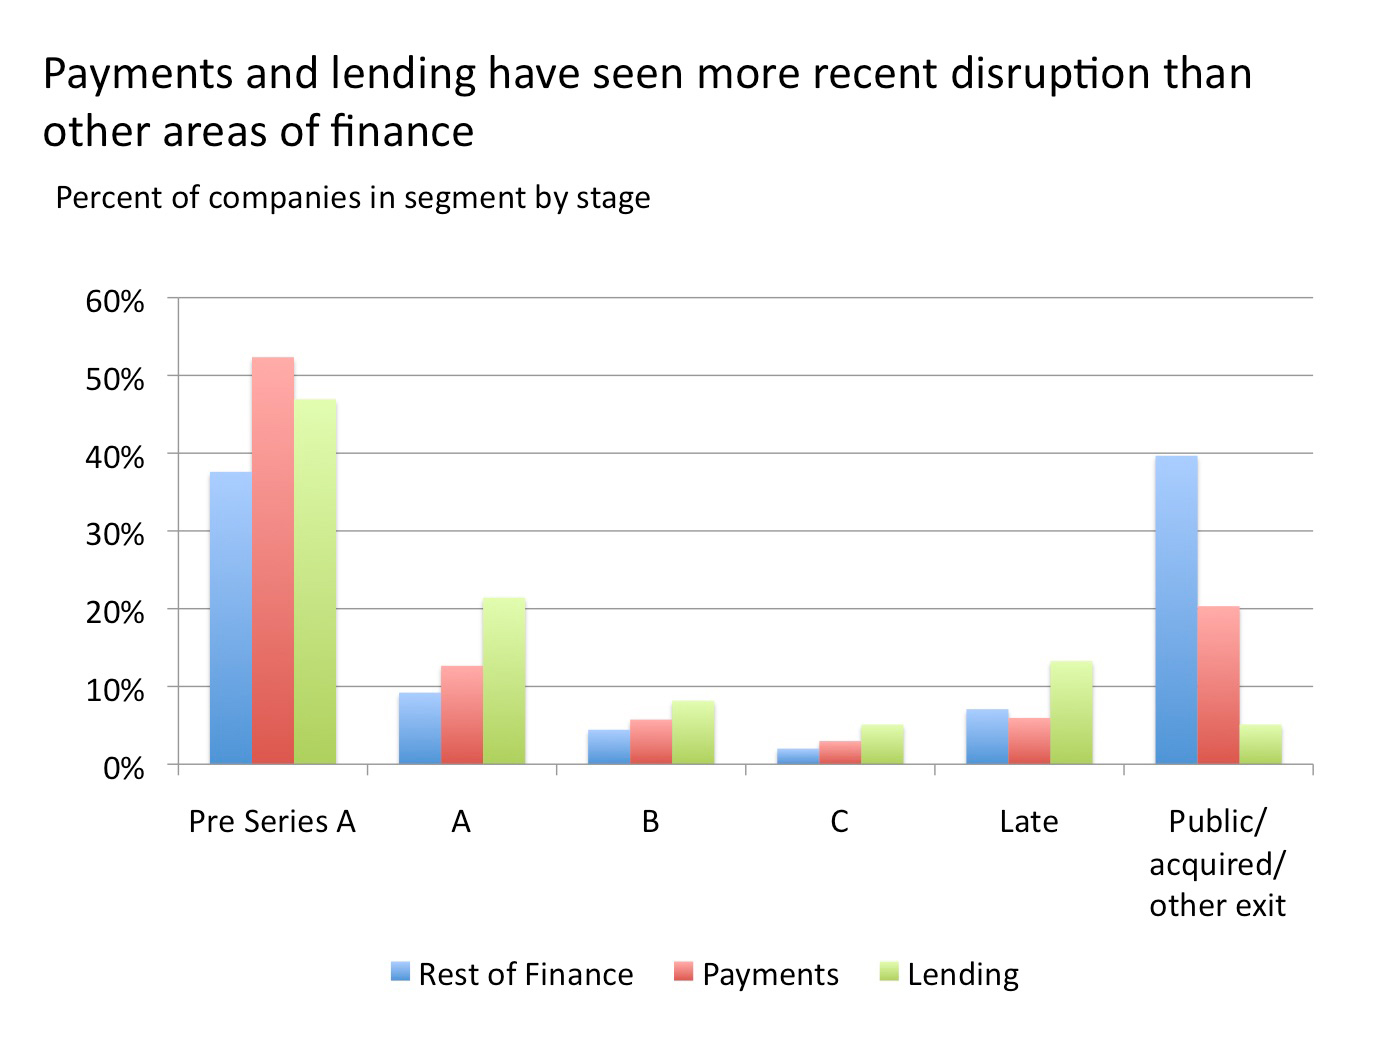 Payments and lending